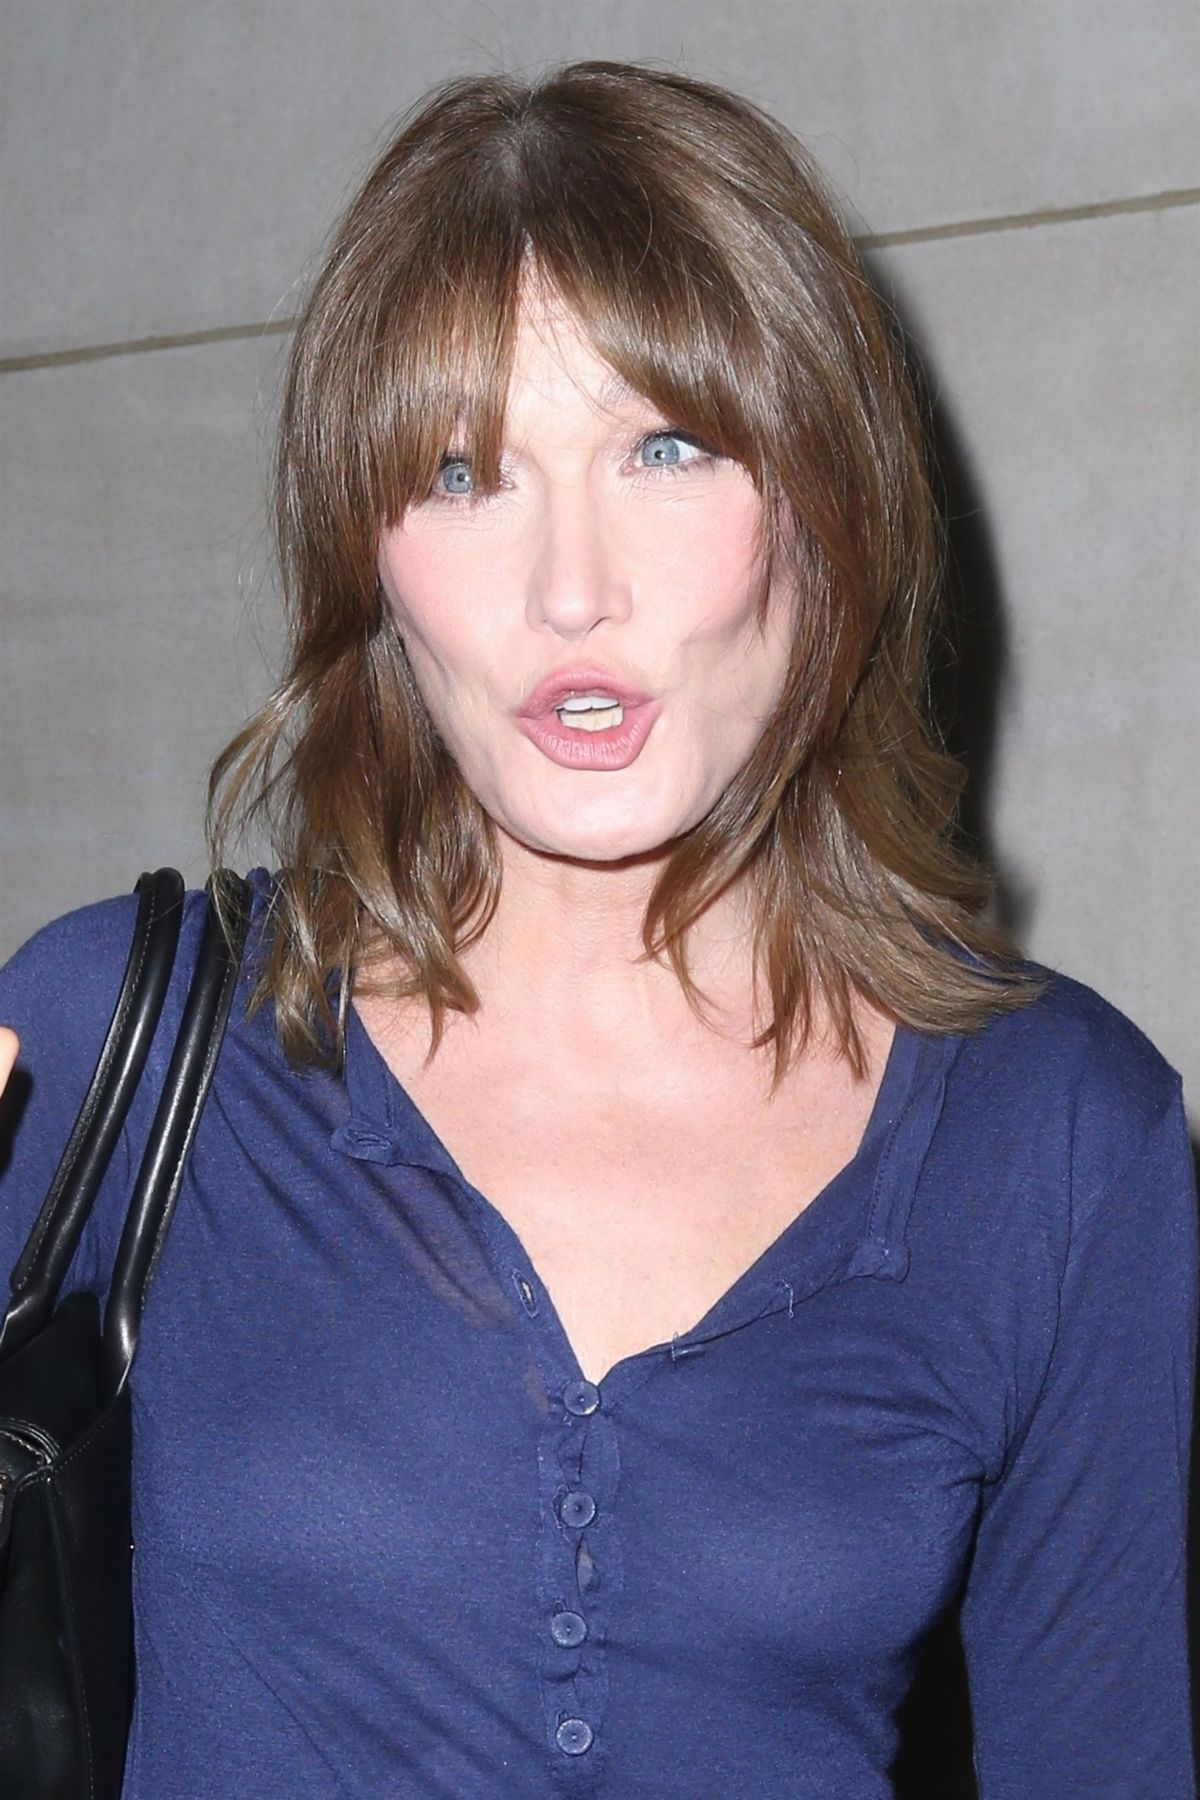 Carla bruni arrives at today show in new york 10 10 2017 for Bruni arredamento